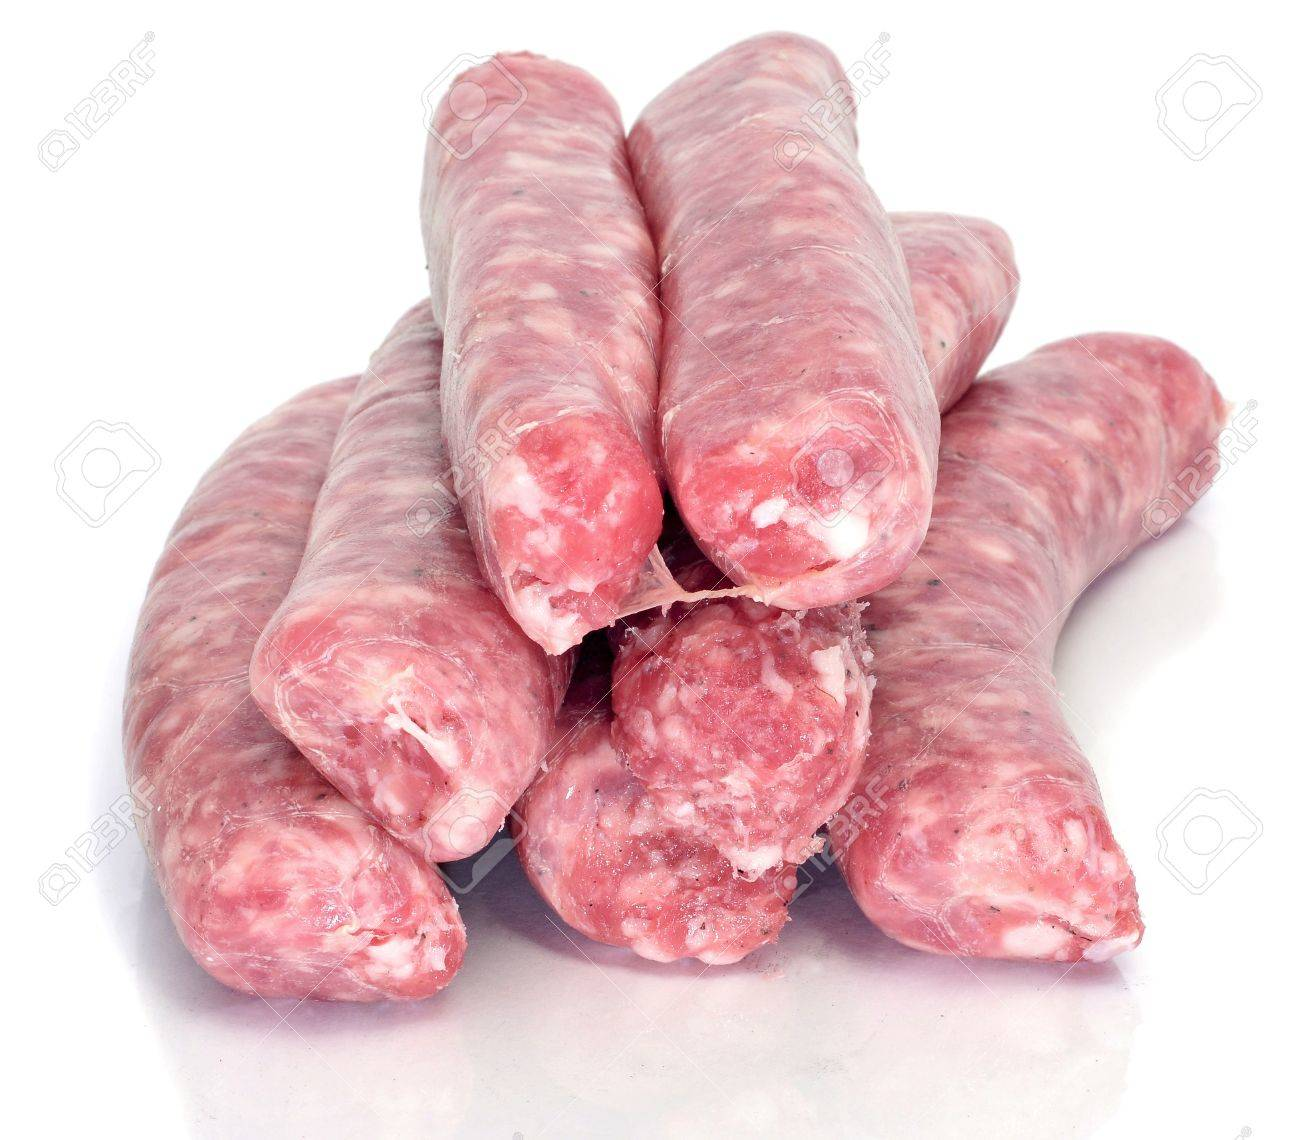 a pile of pork meat sausages on a white background Stock Photo - 9440858